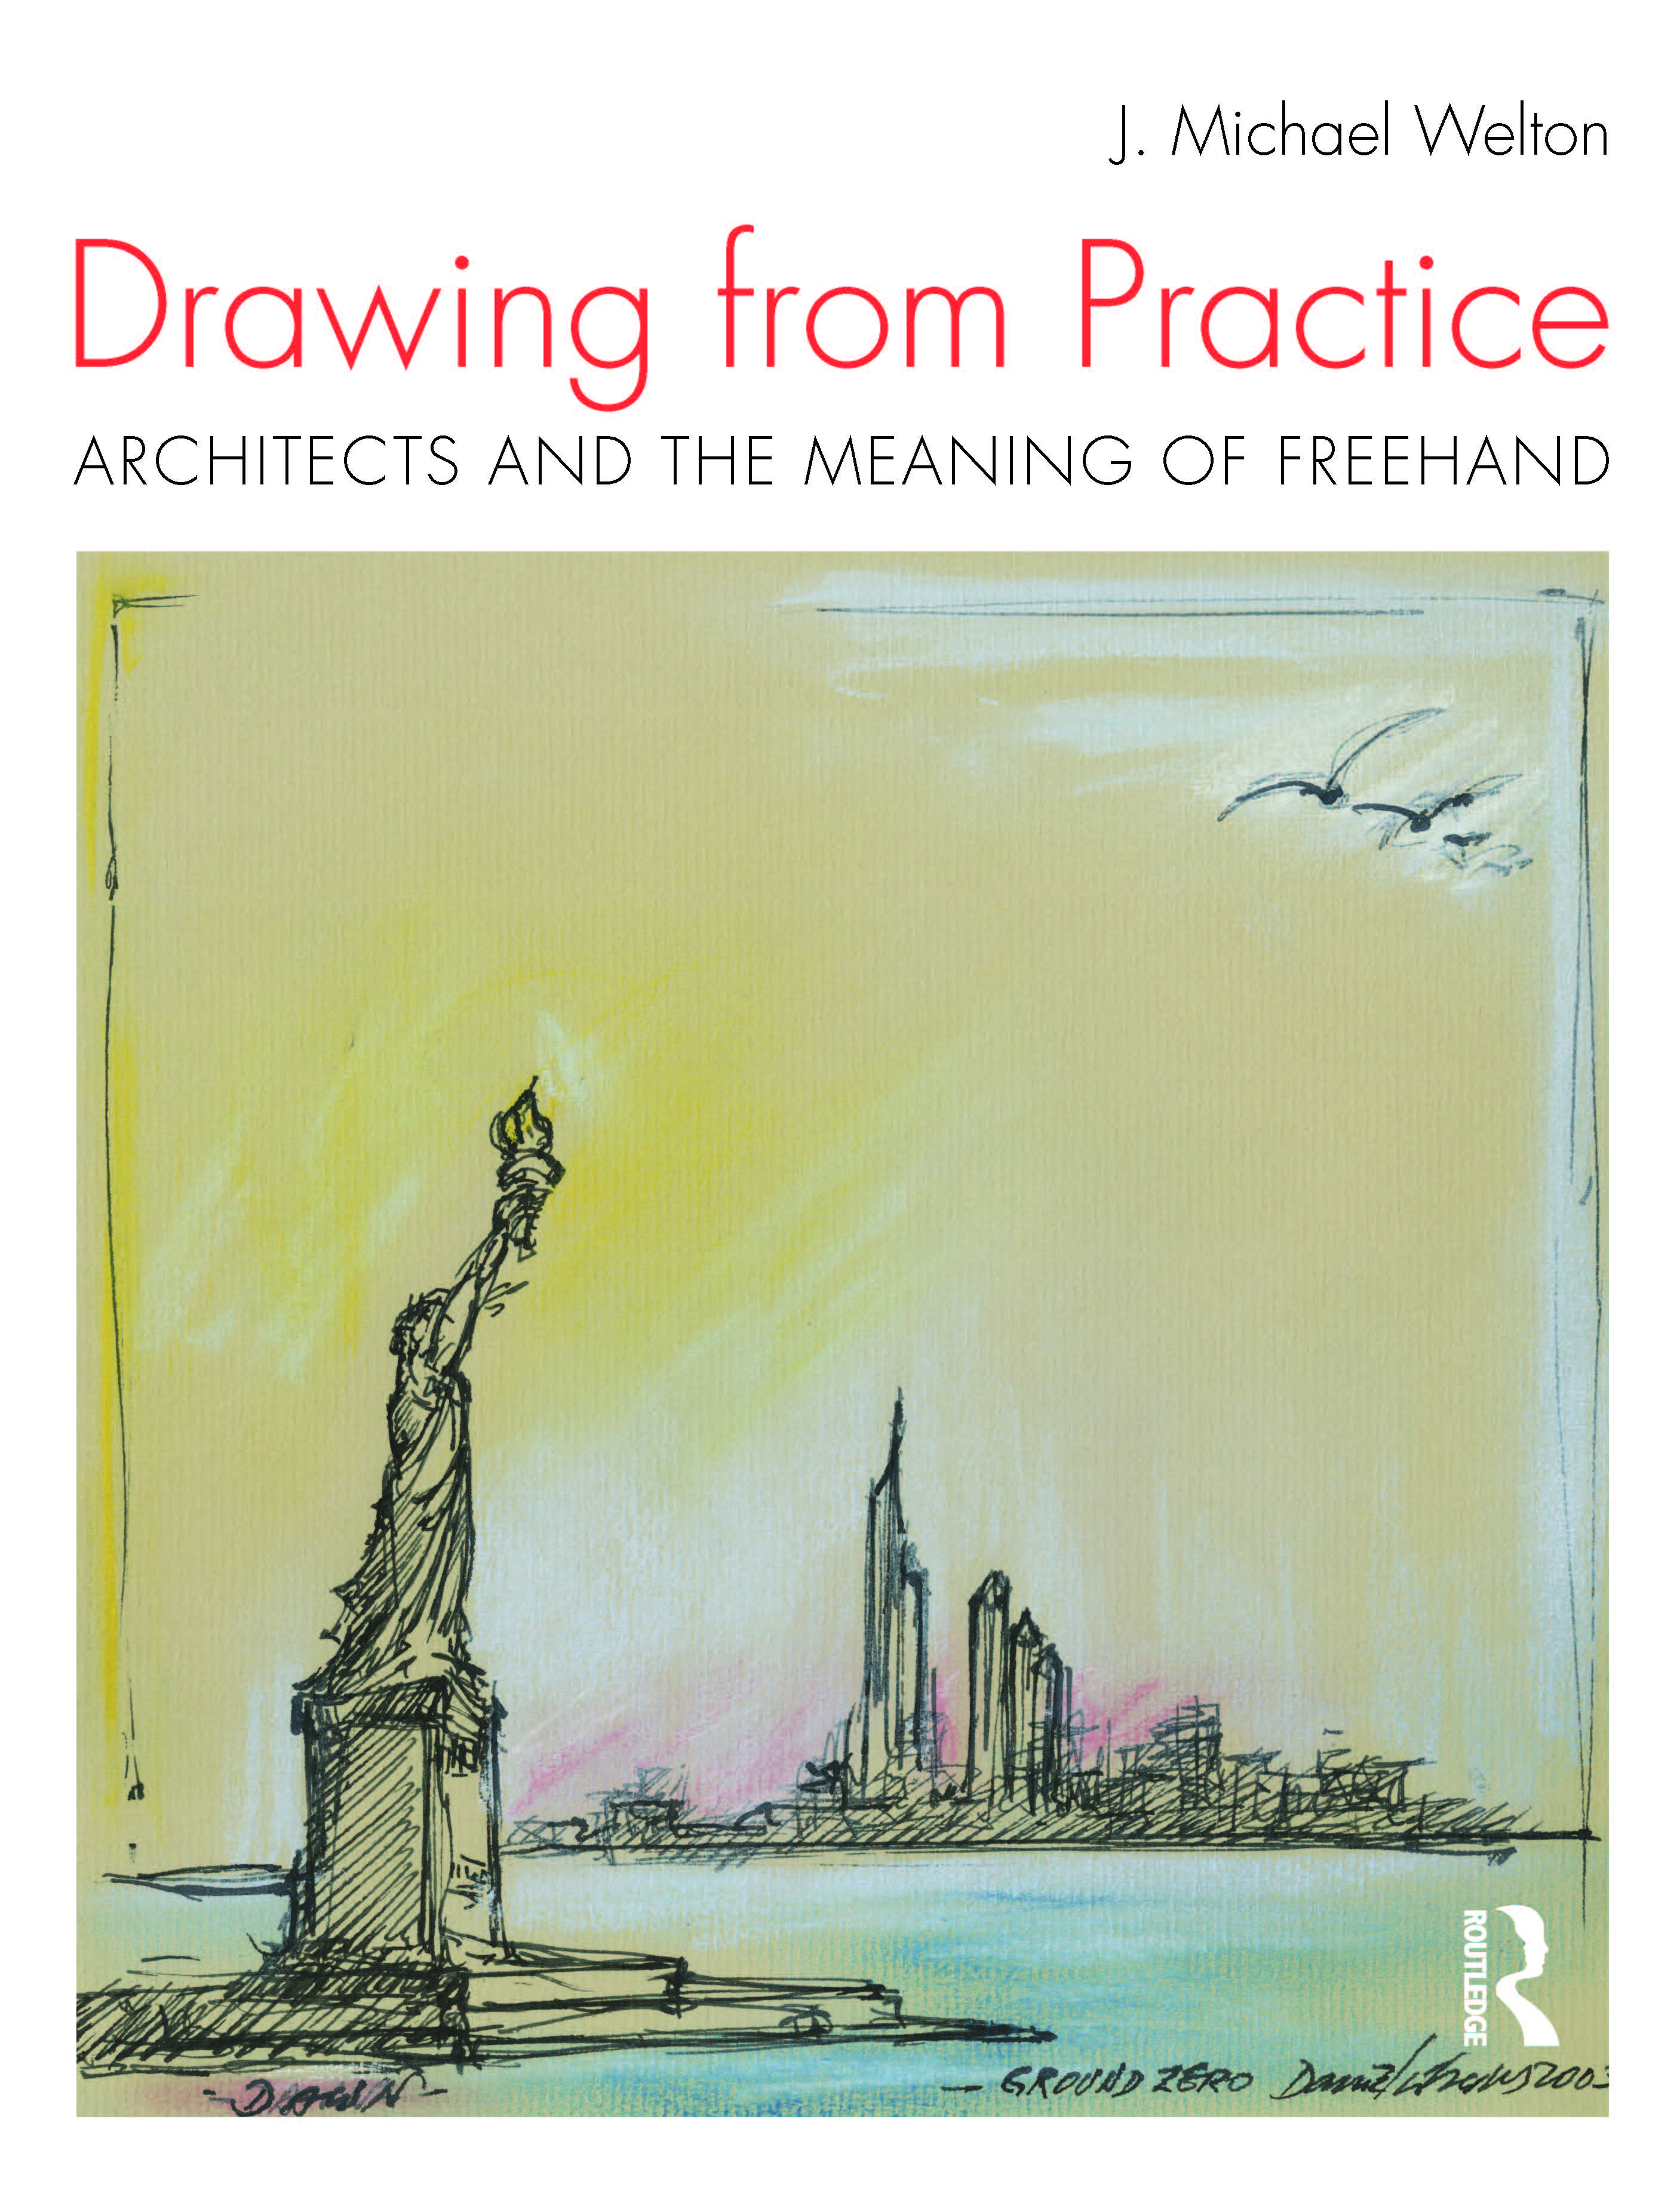 Drawing from Practice: Architects and the Meaning of Freehand